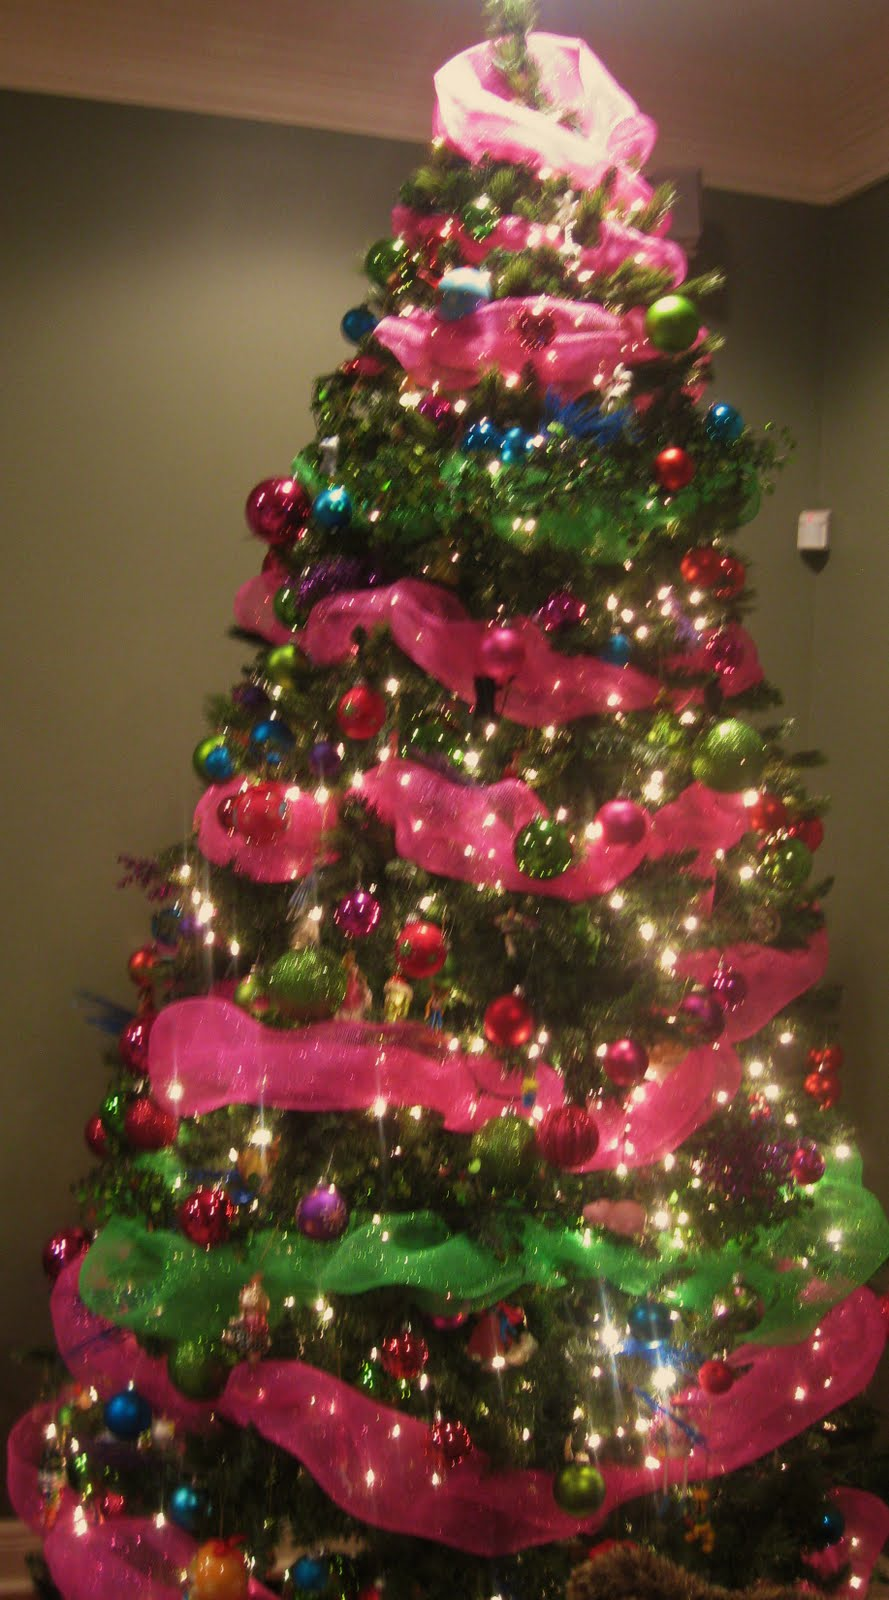 pink and green christmas tree decorations merry christmas - Green Christmas Decorations